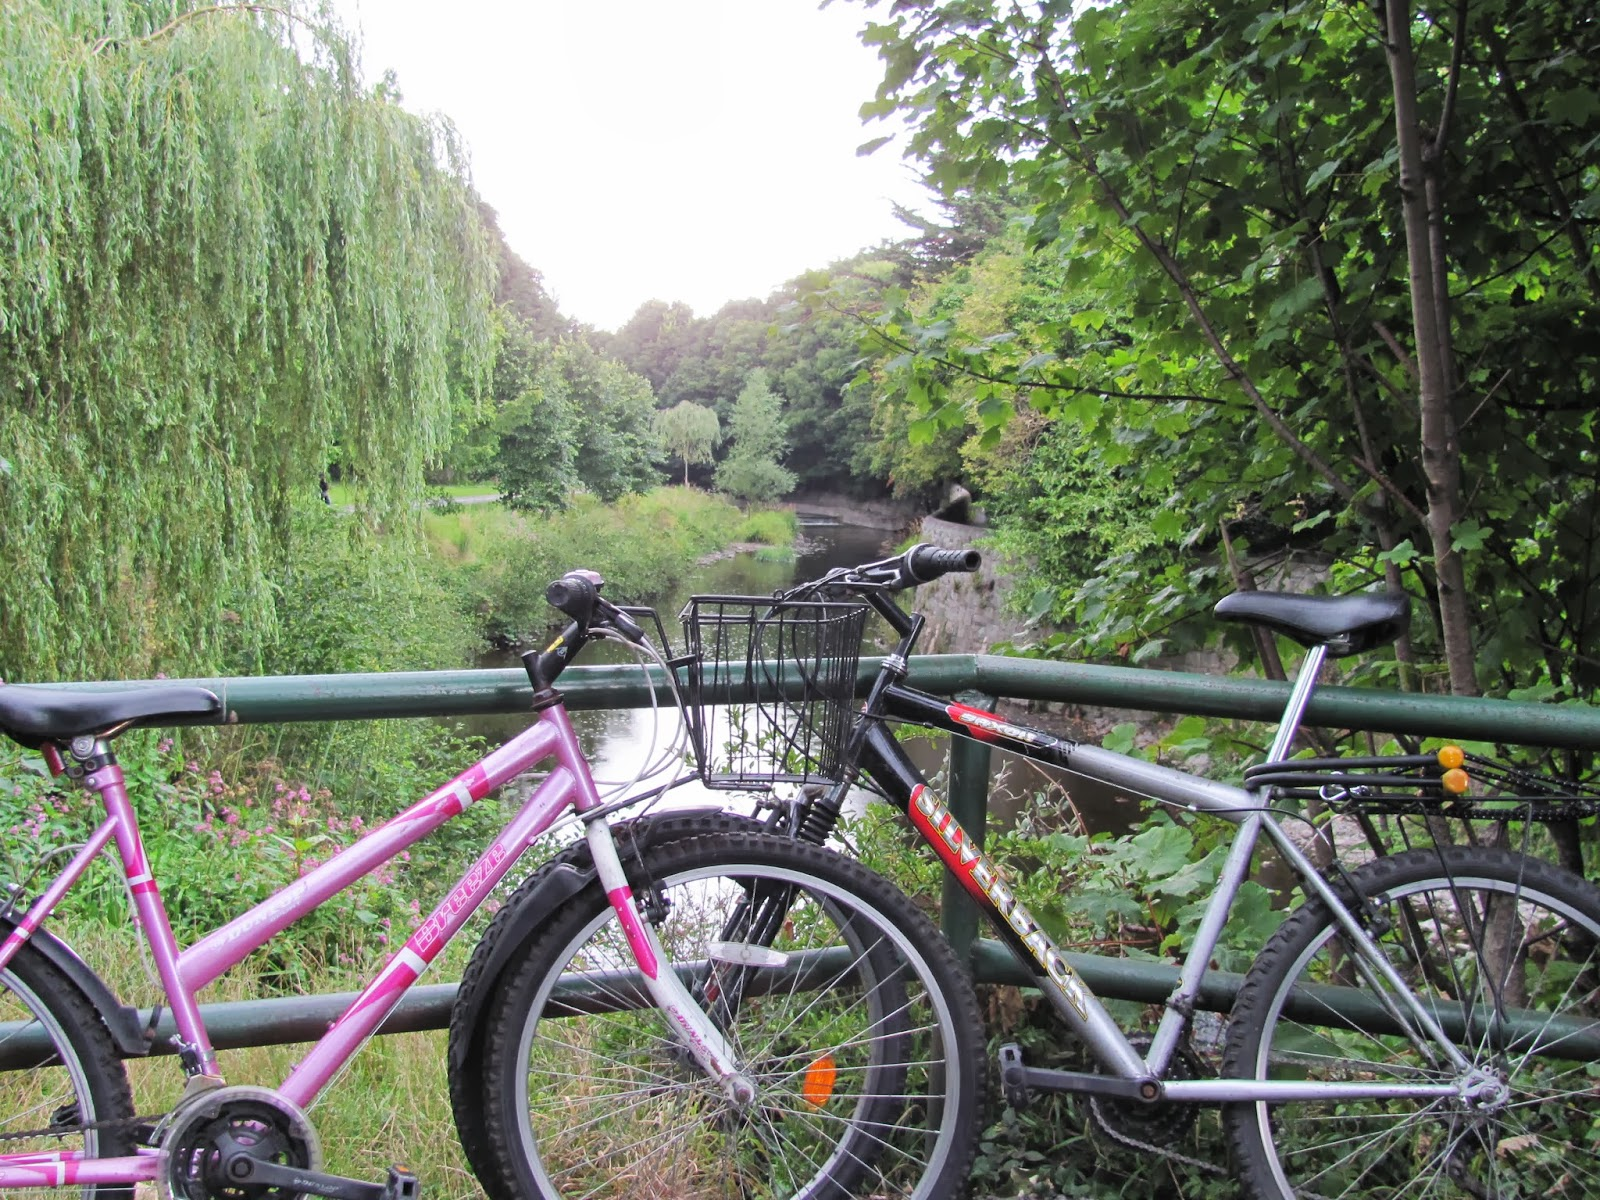 The bikes are parked on a railing on the River Dodder in Dublin, Ireland